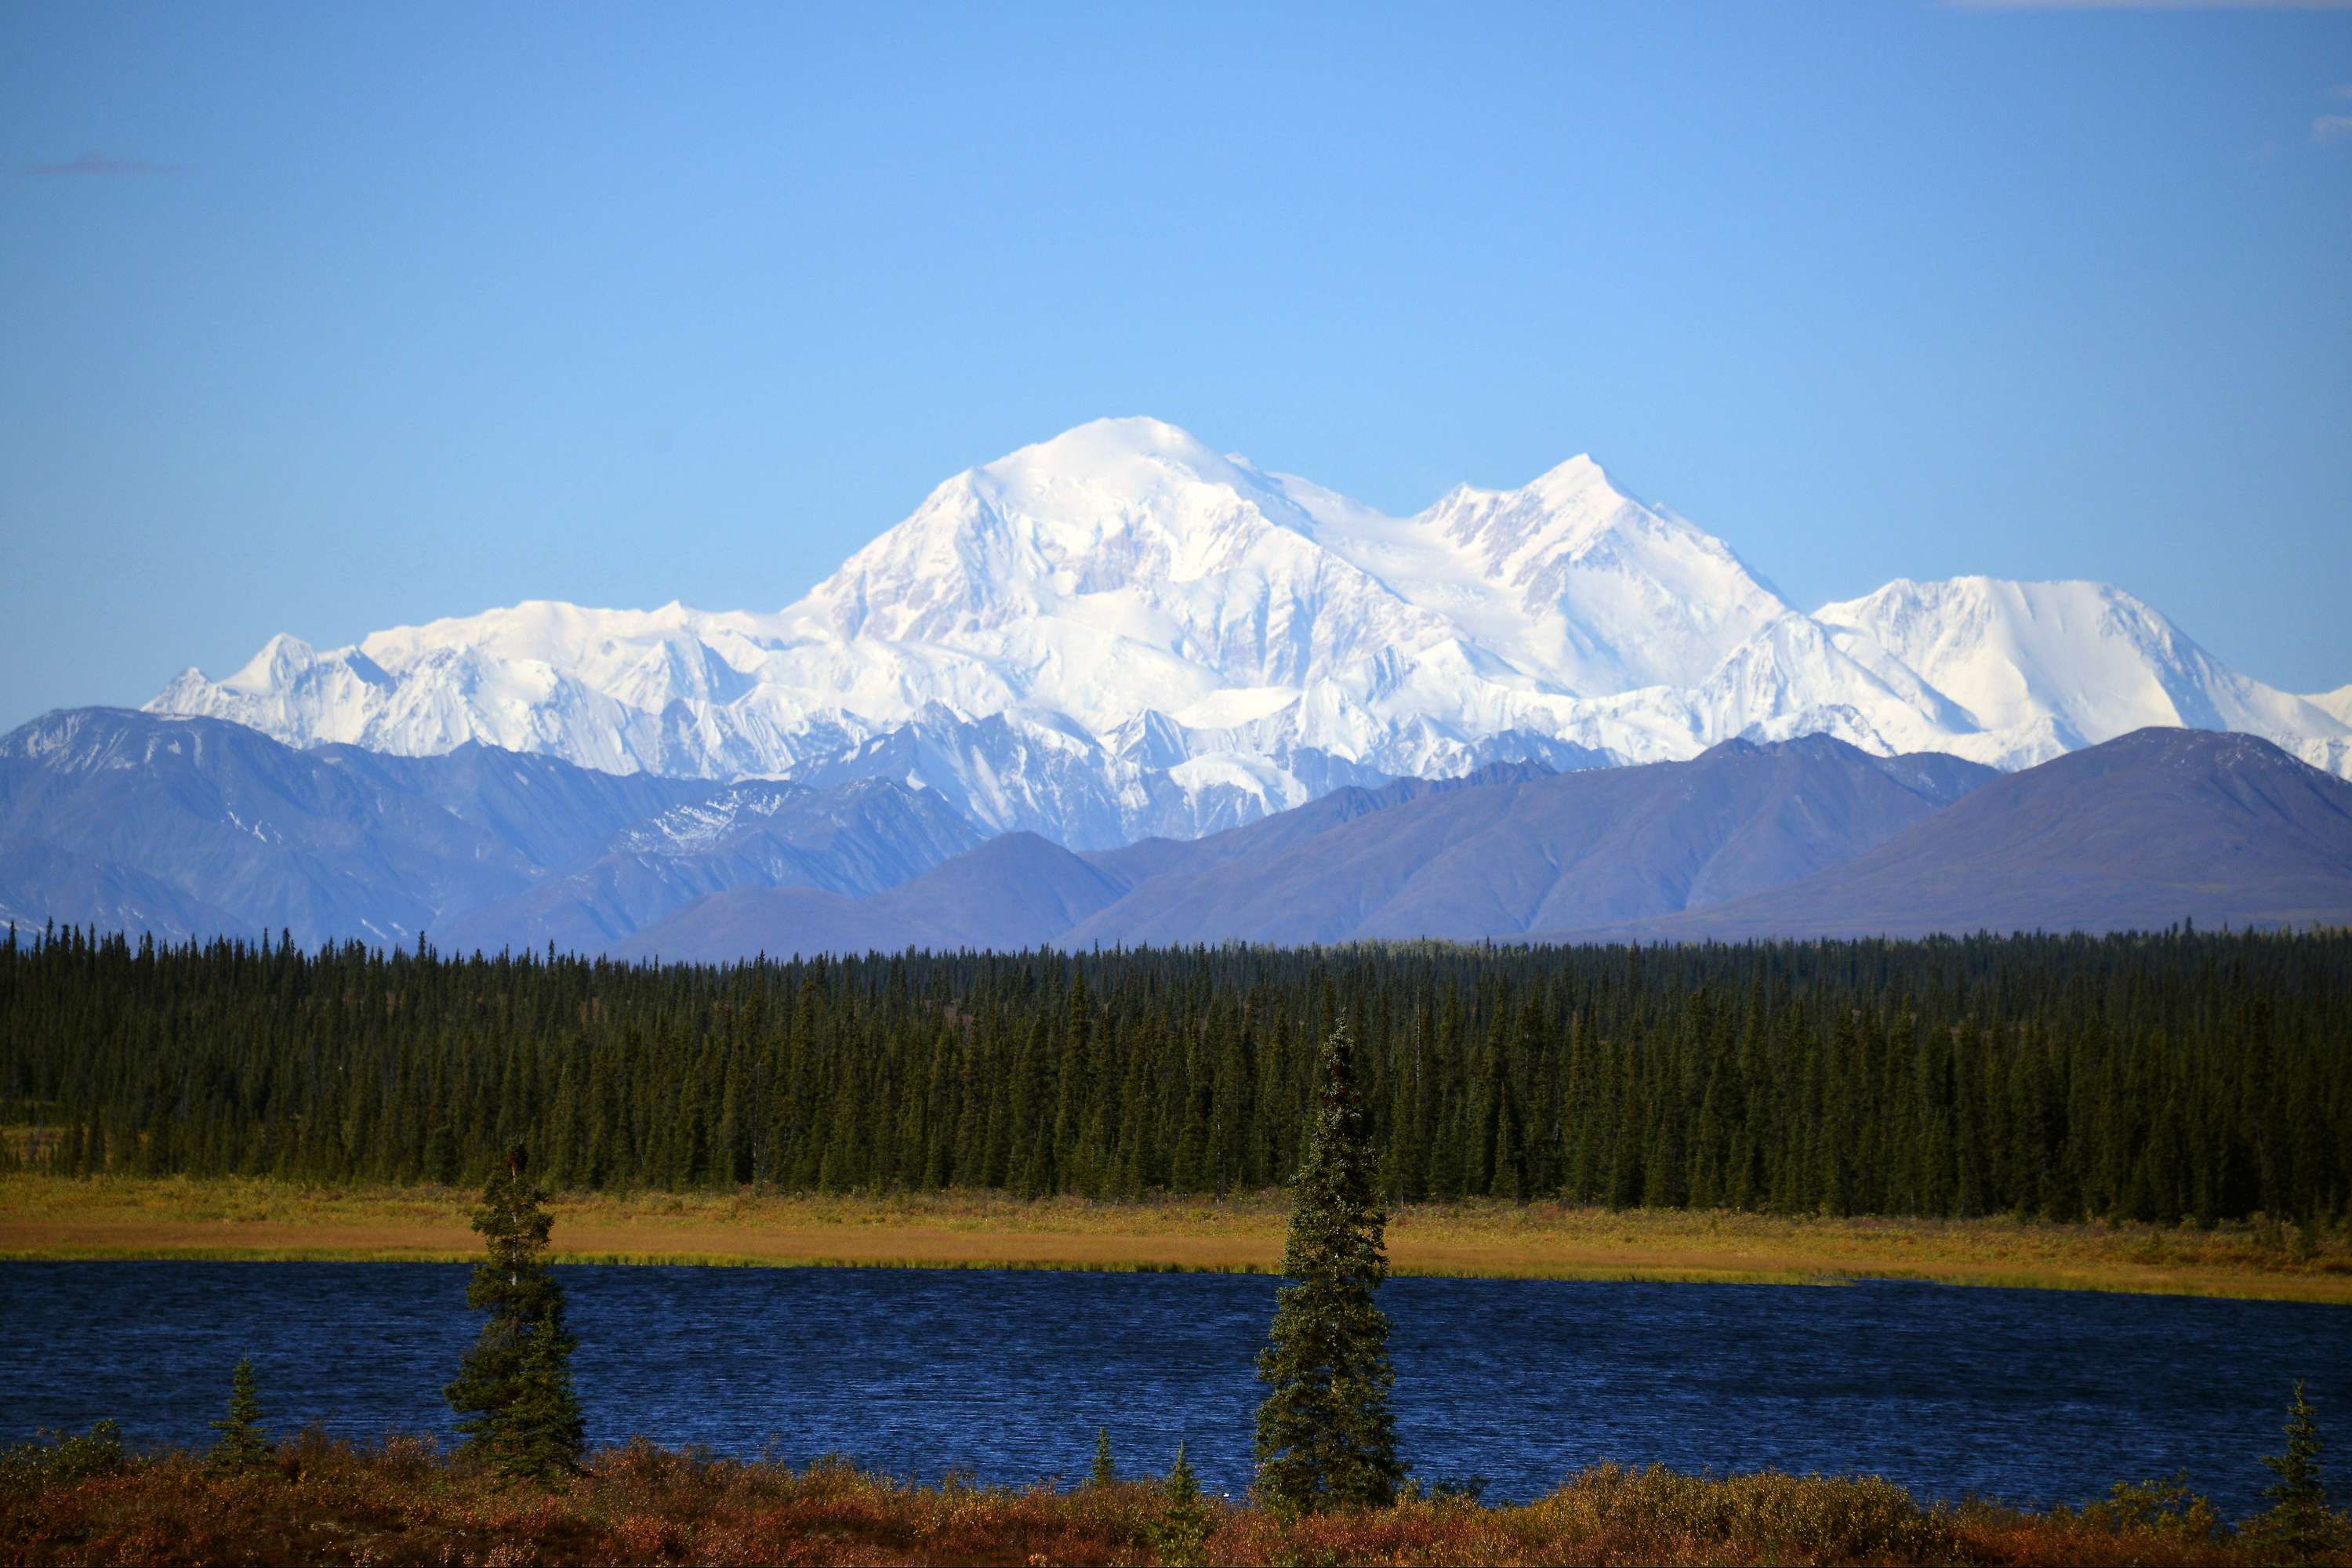 A view of Denali, formerly known as Mt. McKinley, on September 1, 2015 in Denali National Park, Alaska. (Photo by Lance King/Getty Images)